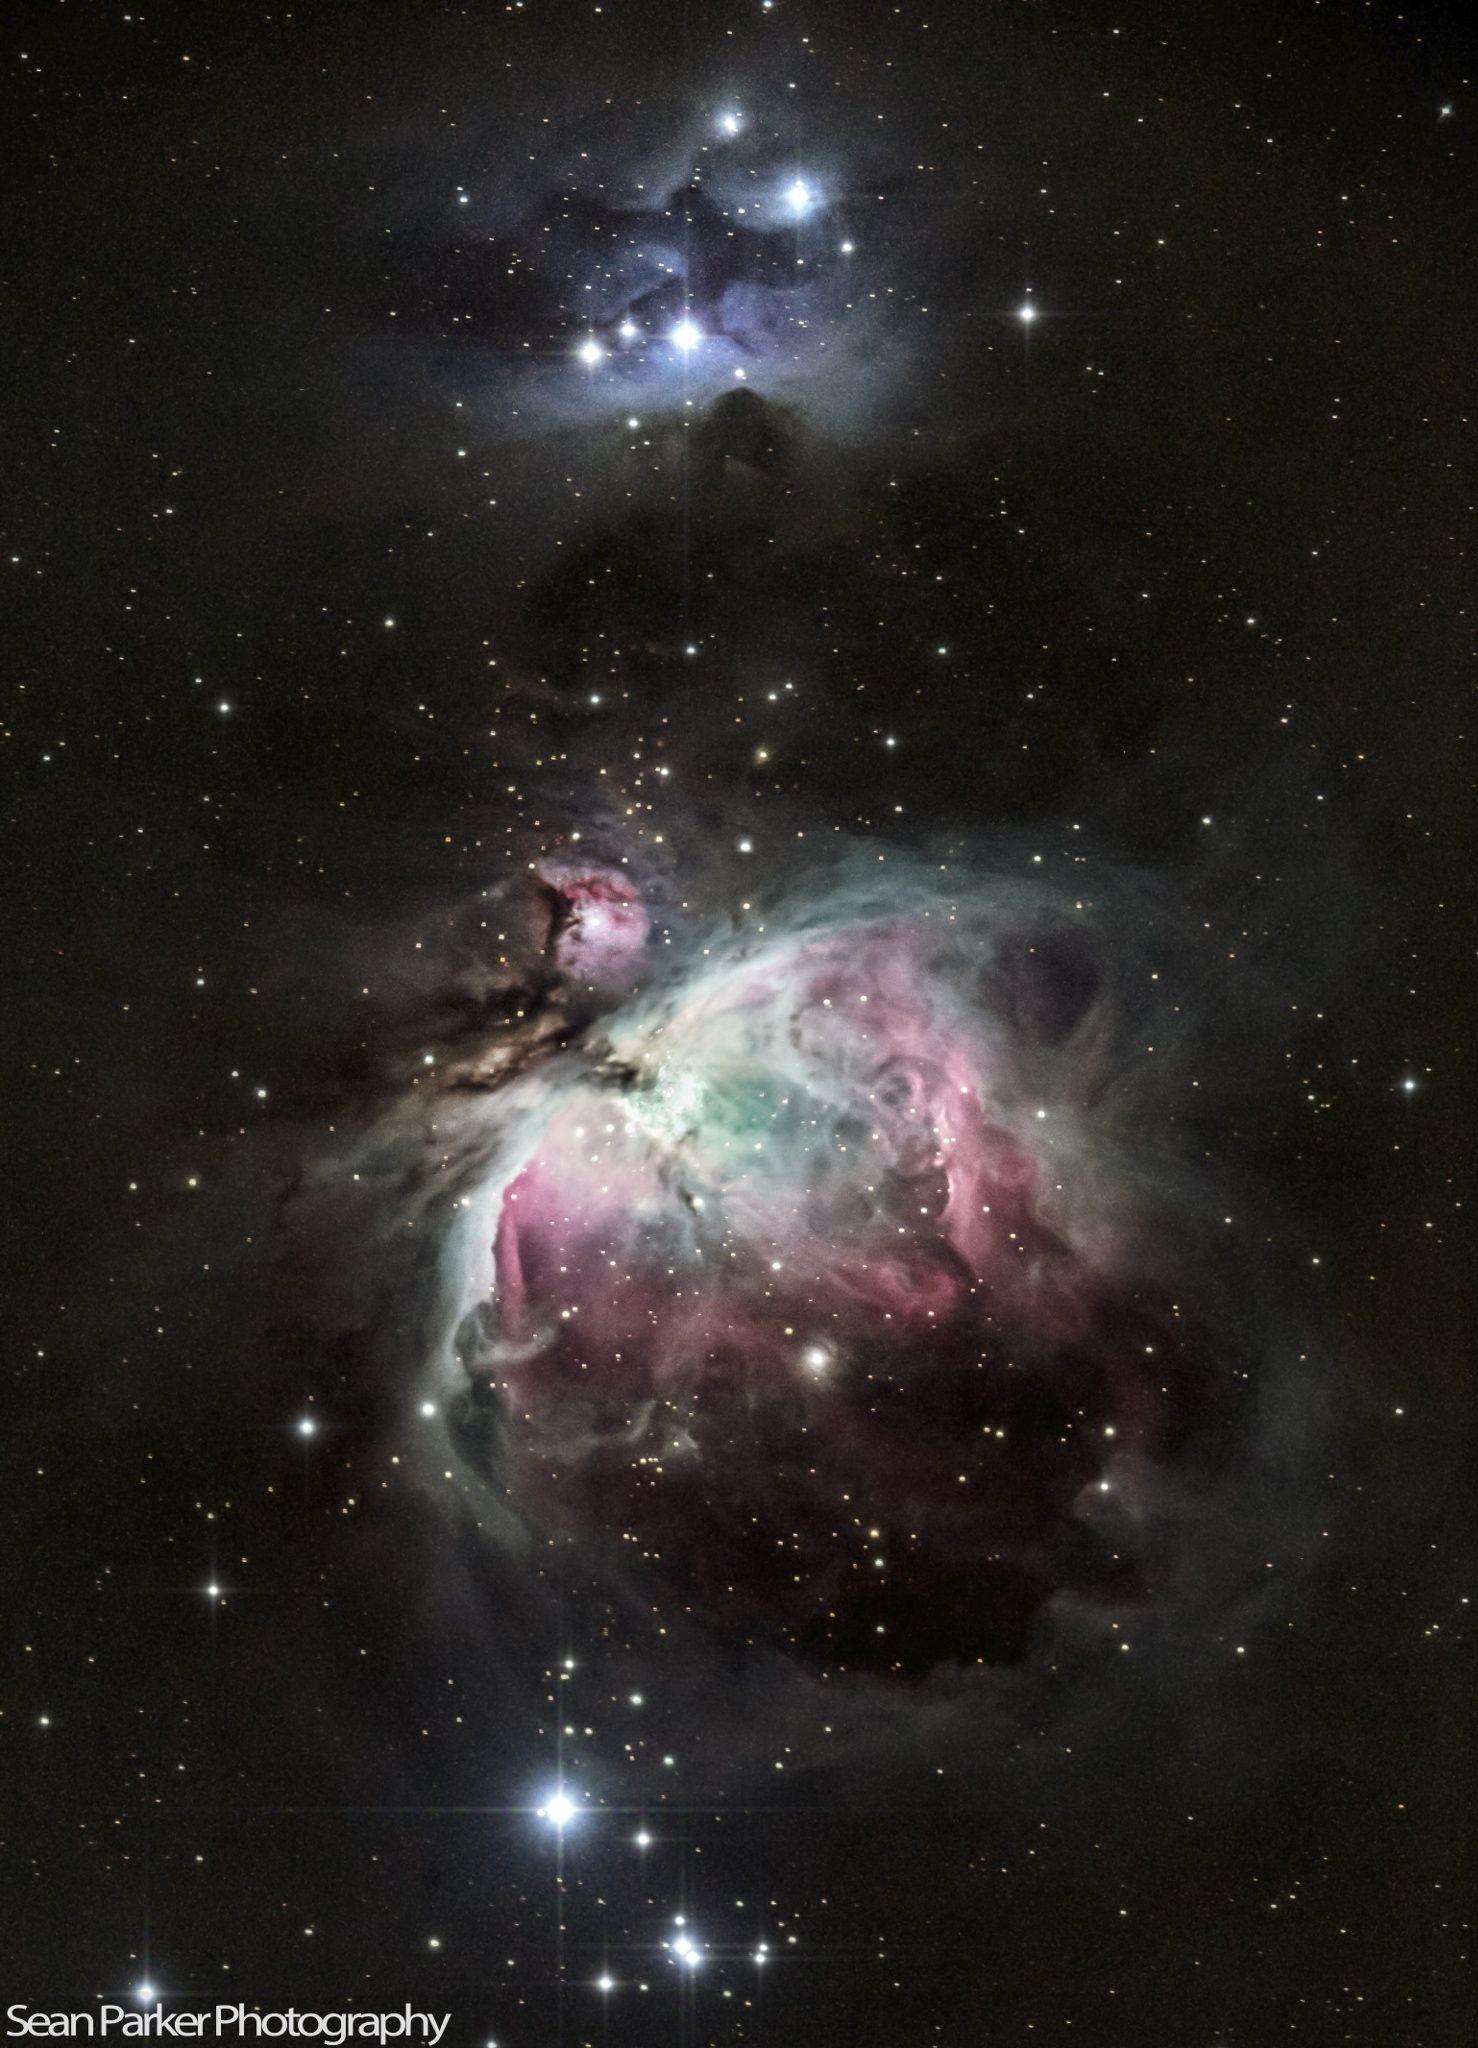 ˚The Great Orion and Running Man Nebula